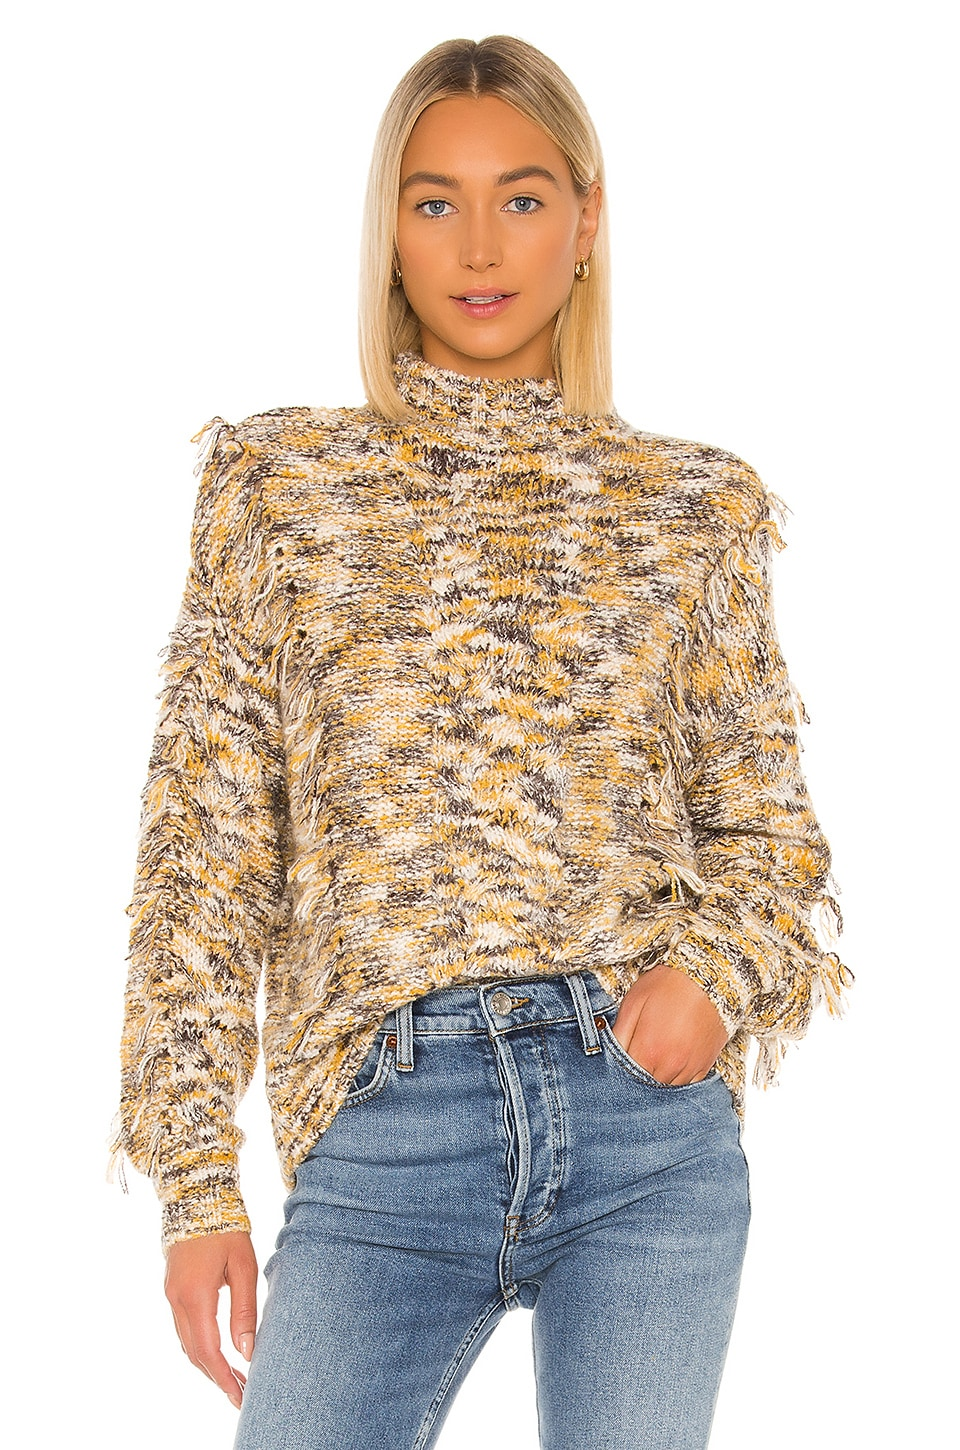 Blue Life Cosette Sweater in Gold & Black Multi